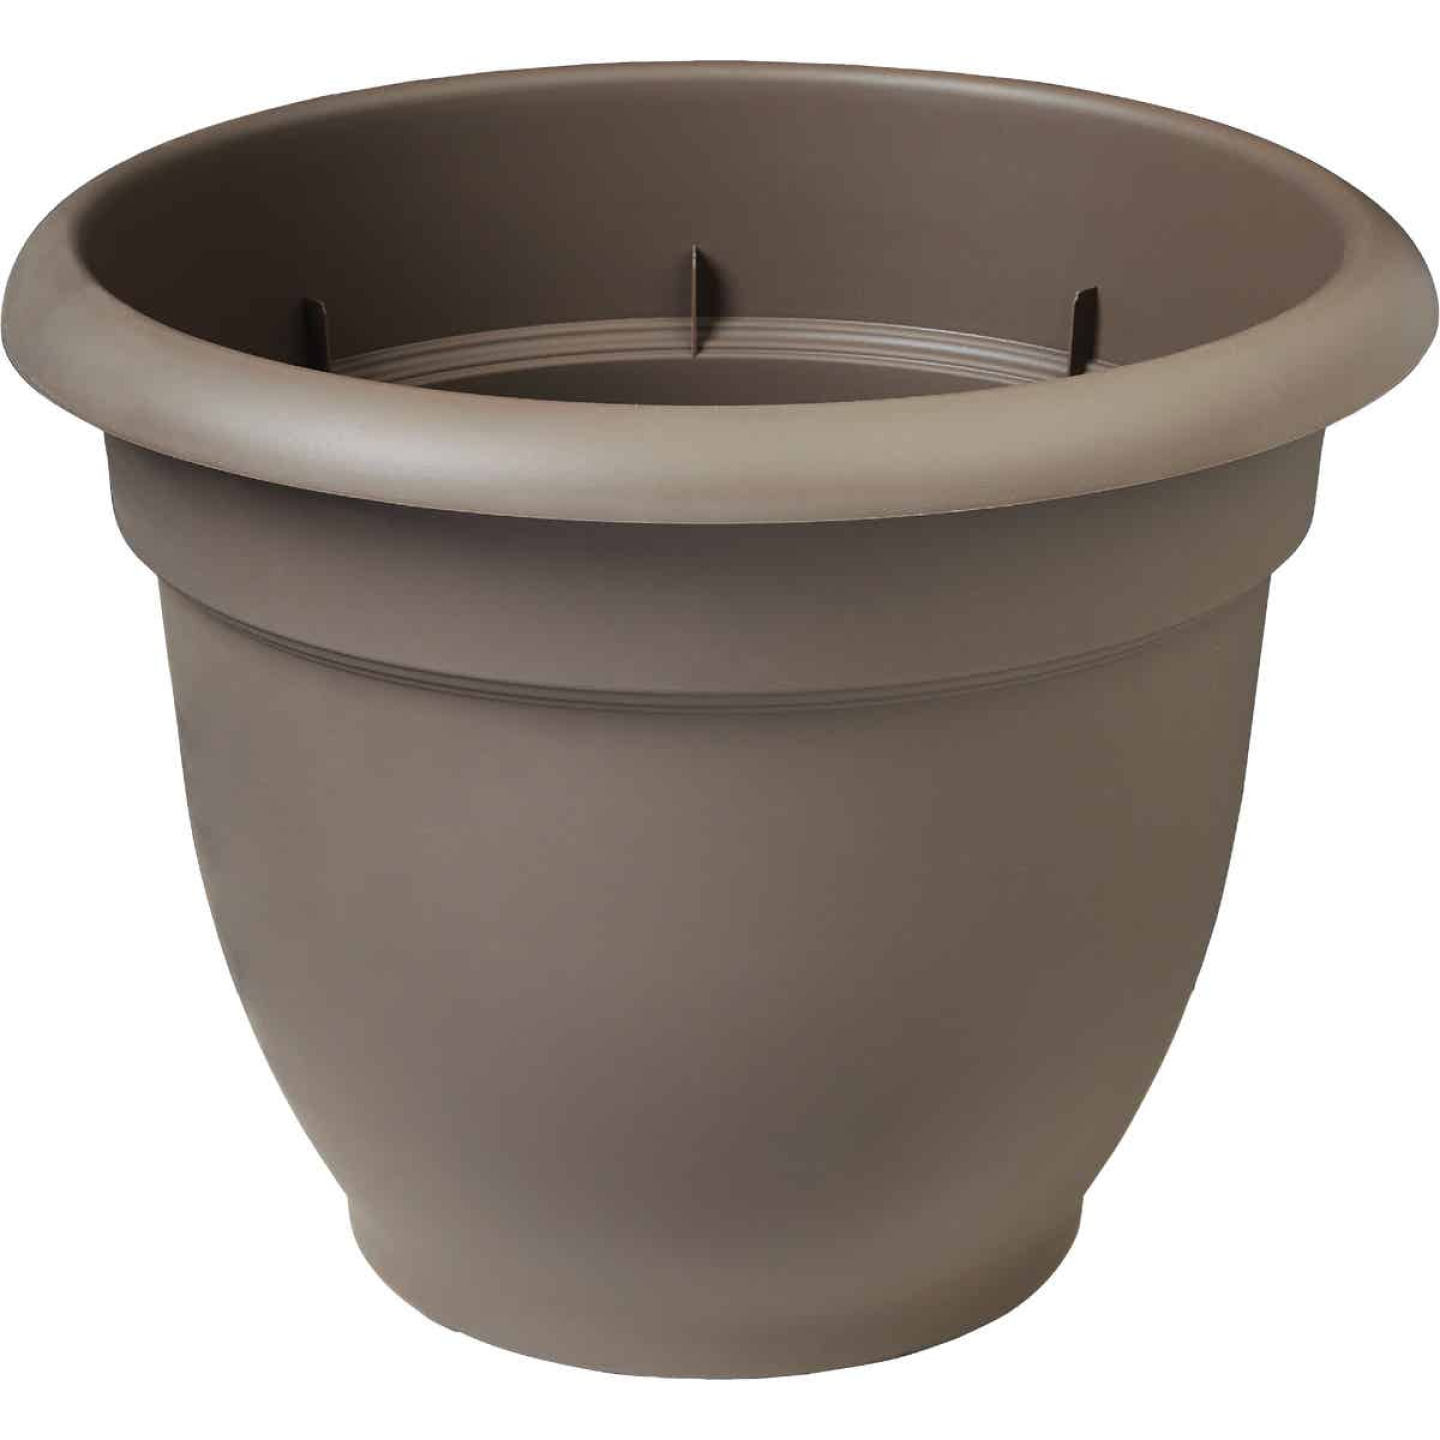 Bloem Ariana 13.75 In. H. x 16 In. Dia. Plastic Self Watering Charcoal Planter Image 1